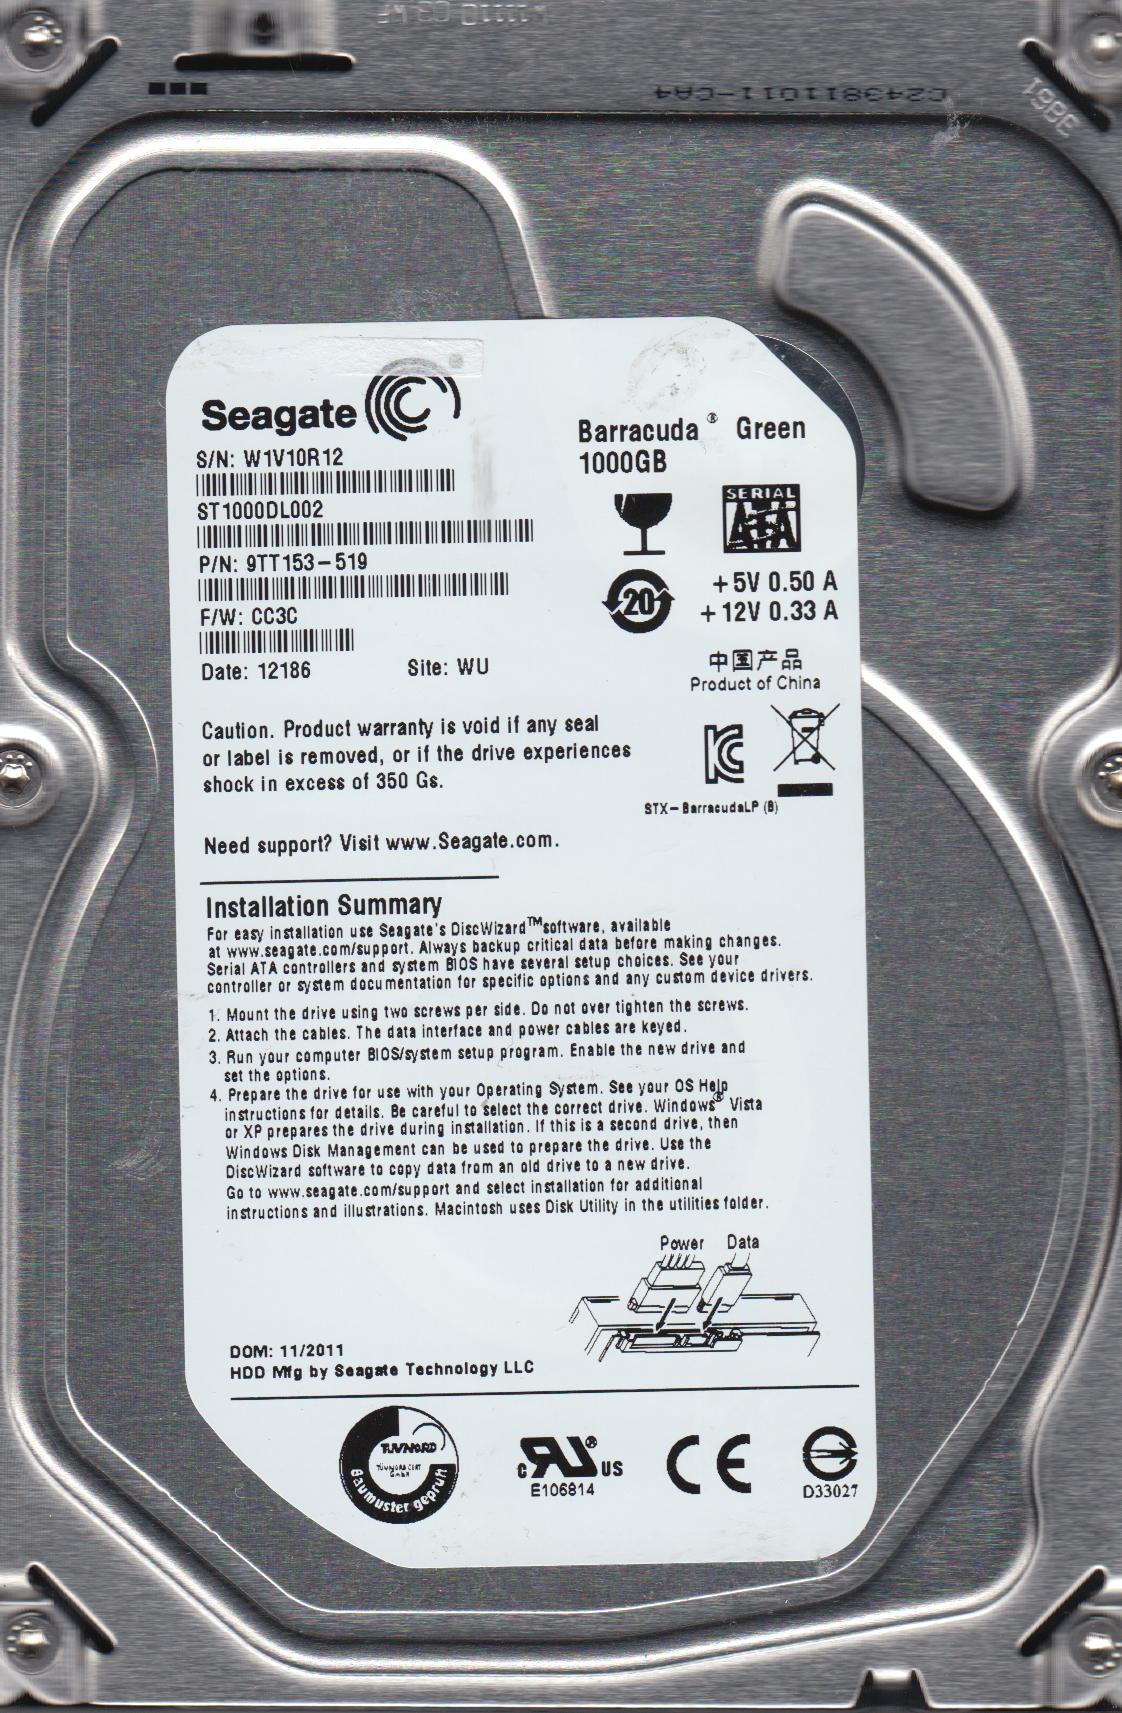 ST1000DL002, W1V, WU, PN 9TT153-519, FW CC3C, Seagate 1TB SATA 3.5 Hard Drive by Seagate